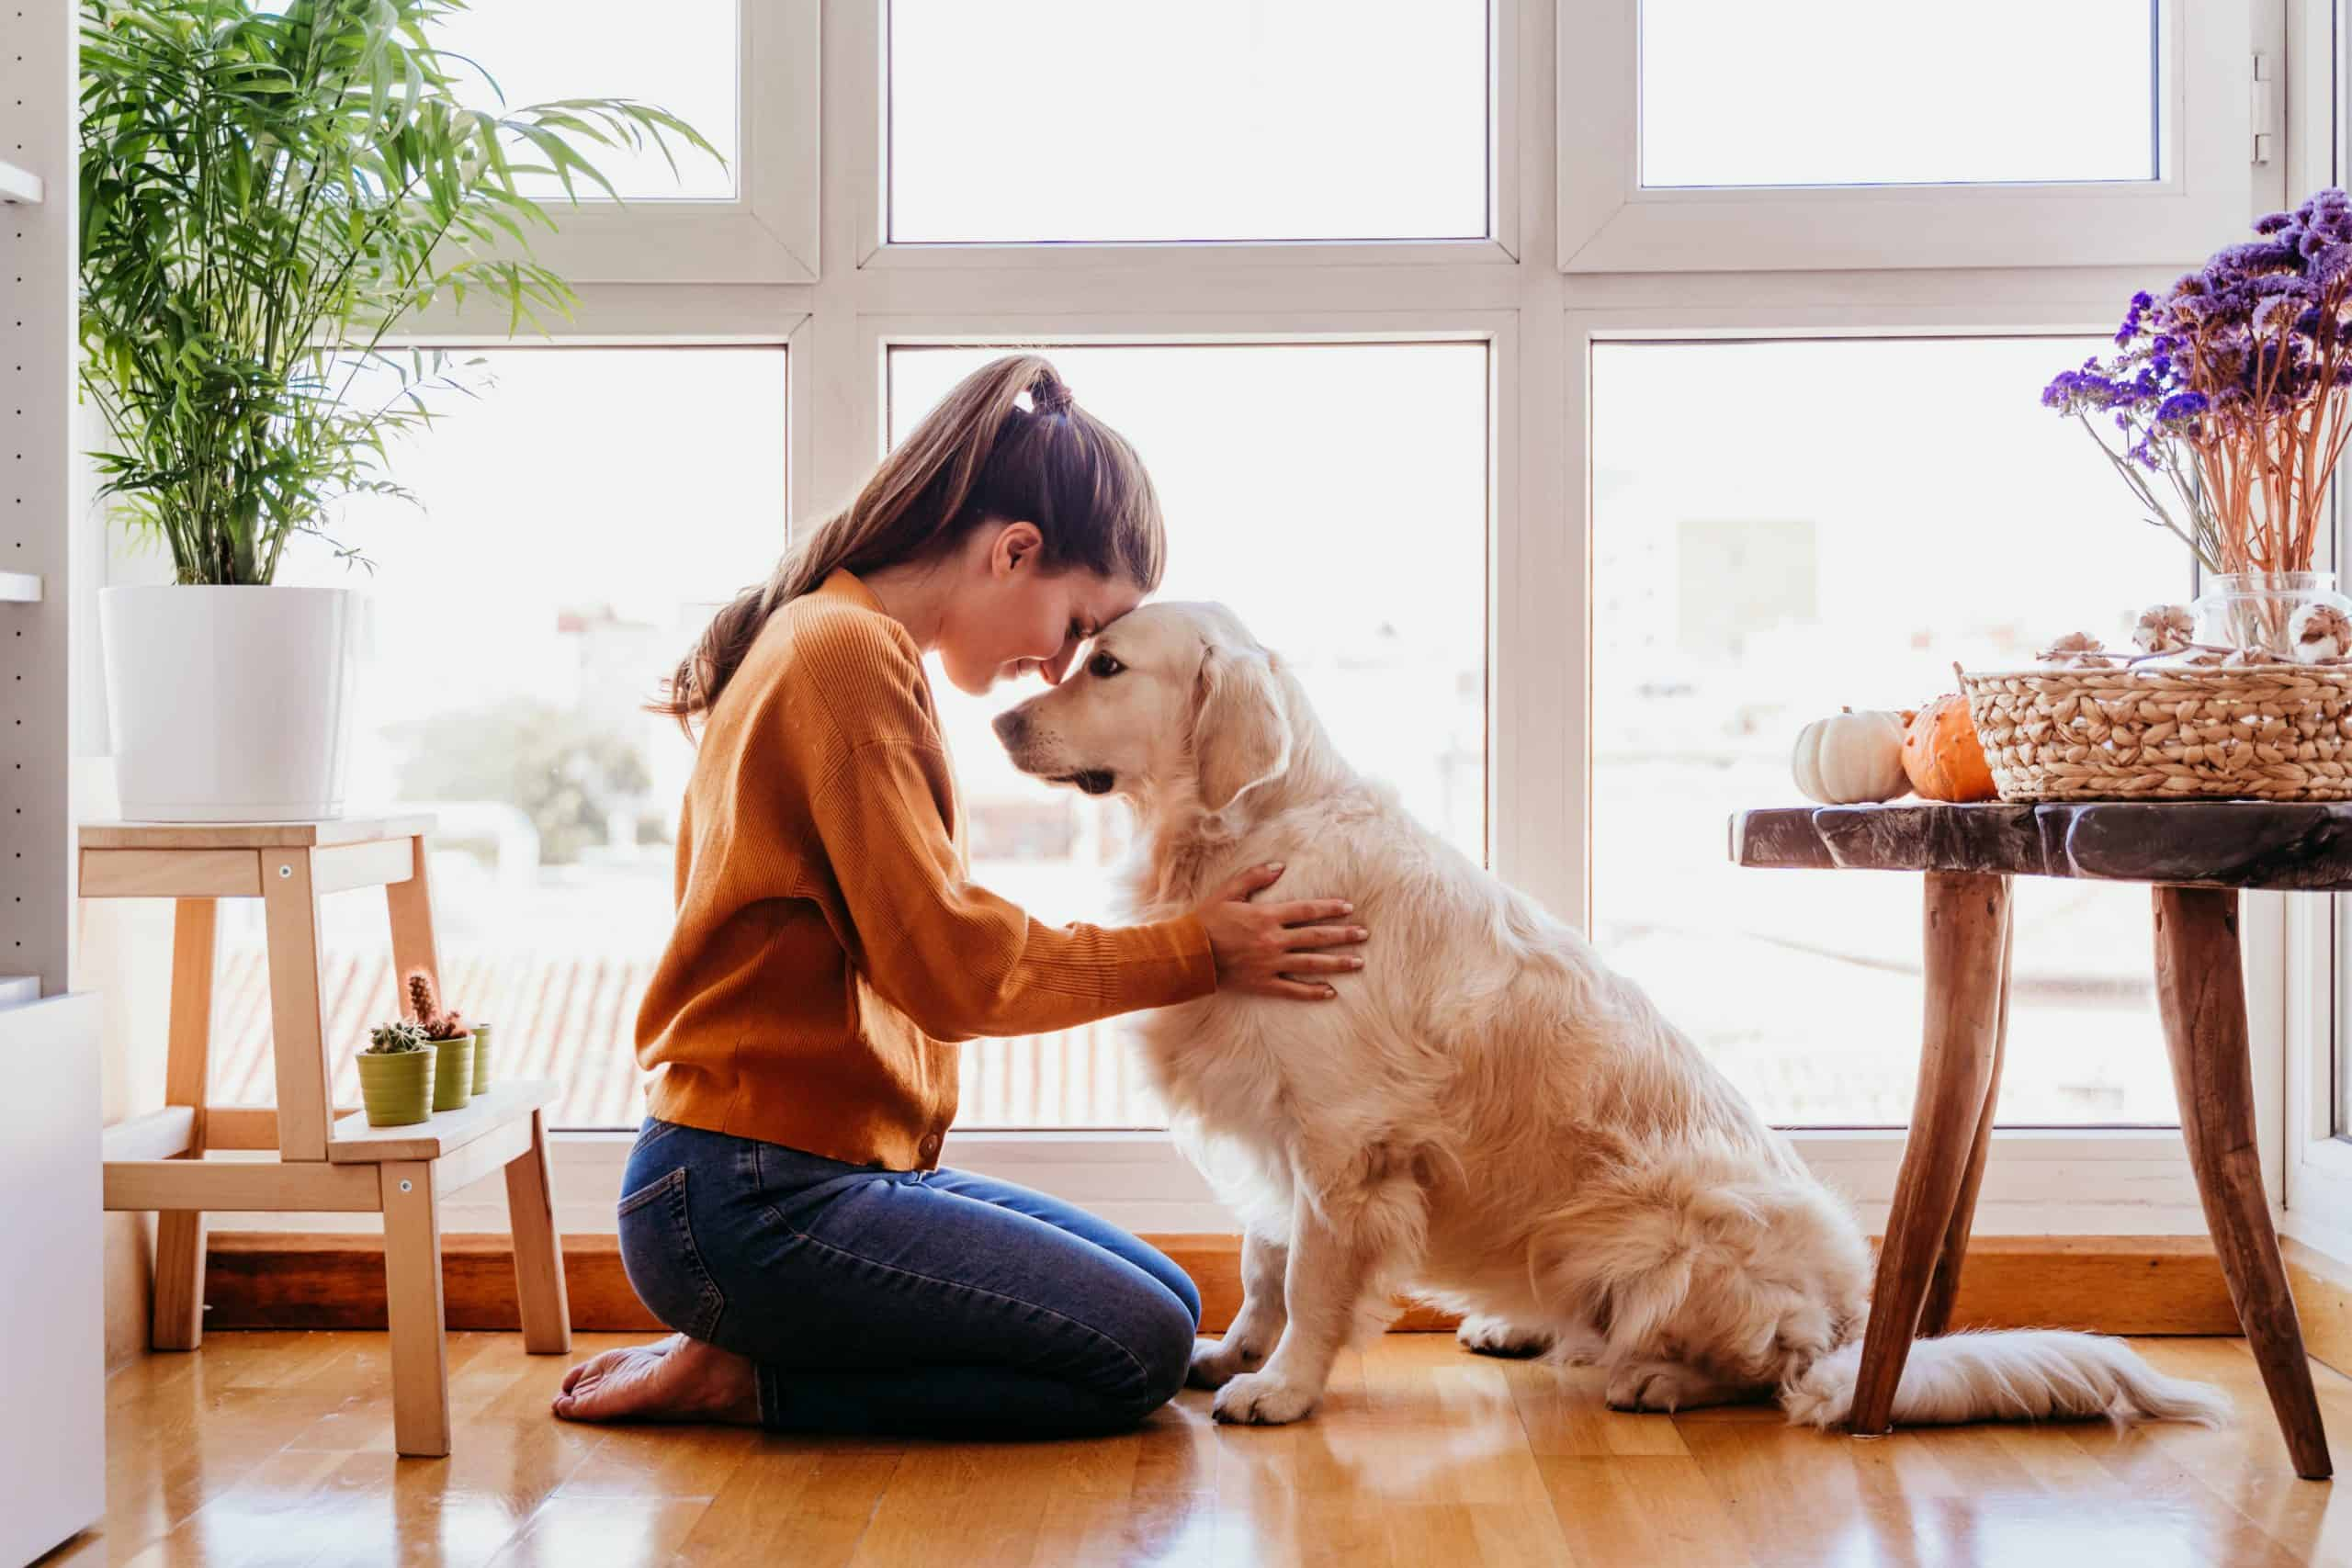 Woman cuddles with Golden Retriever. As a new dog owner, it's key to meet your dog's basic needs, including veterinary care, food, water, shelter, and toys.